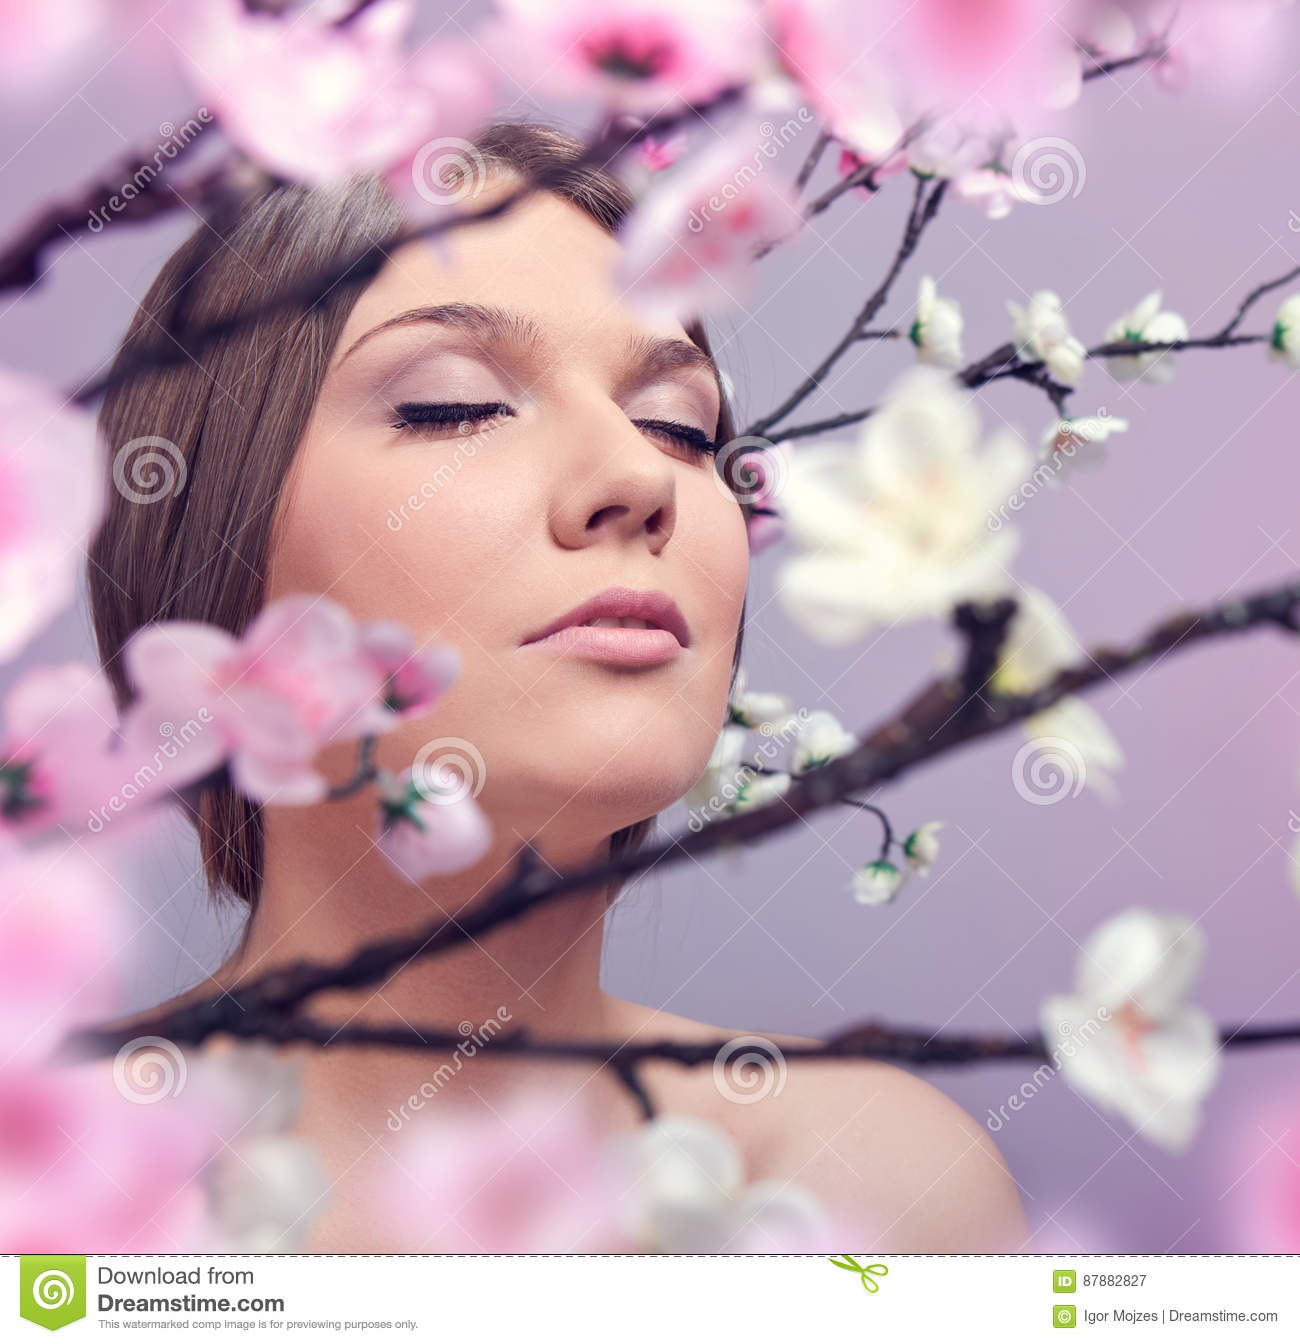 Woman enjoying in spring